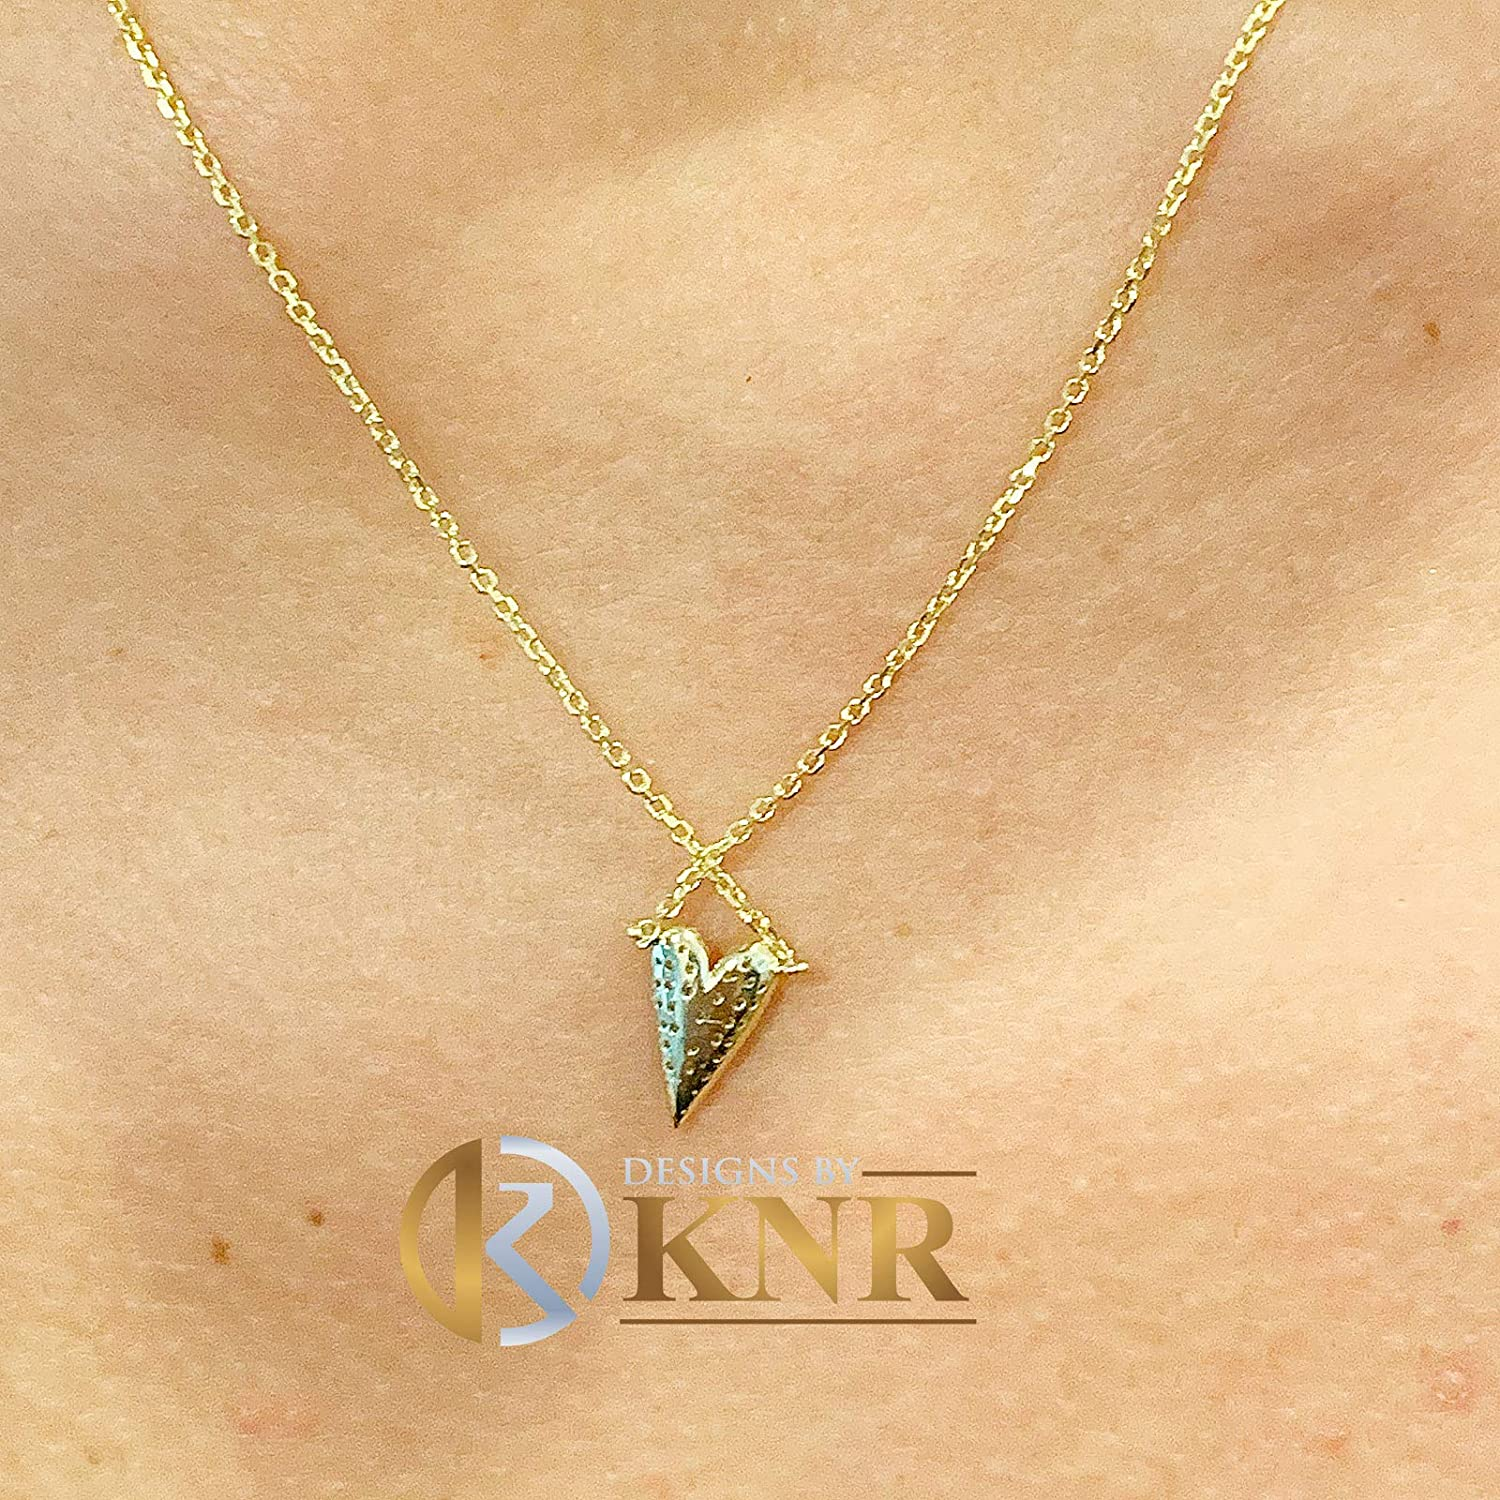 Dainty 14K Solid yellow Gold Round Cut Simulated Diamonds Heart Shape Pave Set Pendent Wedding Bridal Gift 0.20ctw